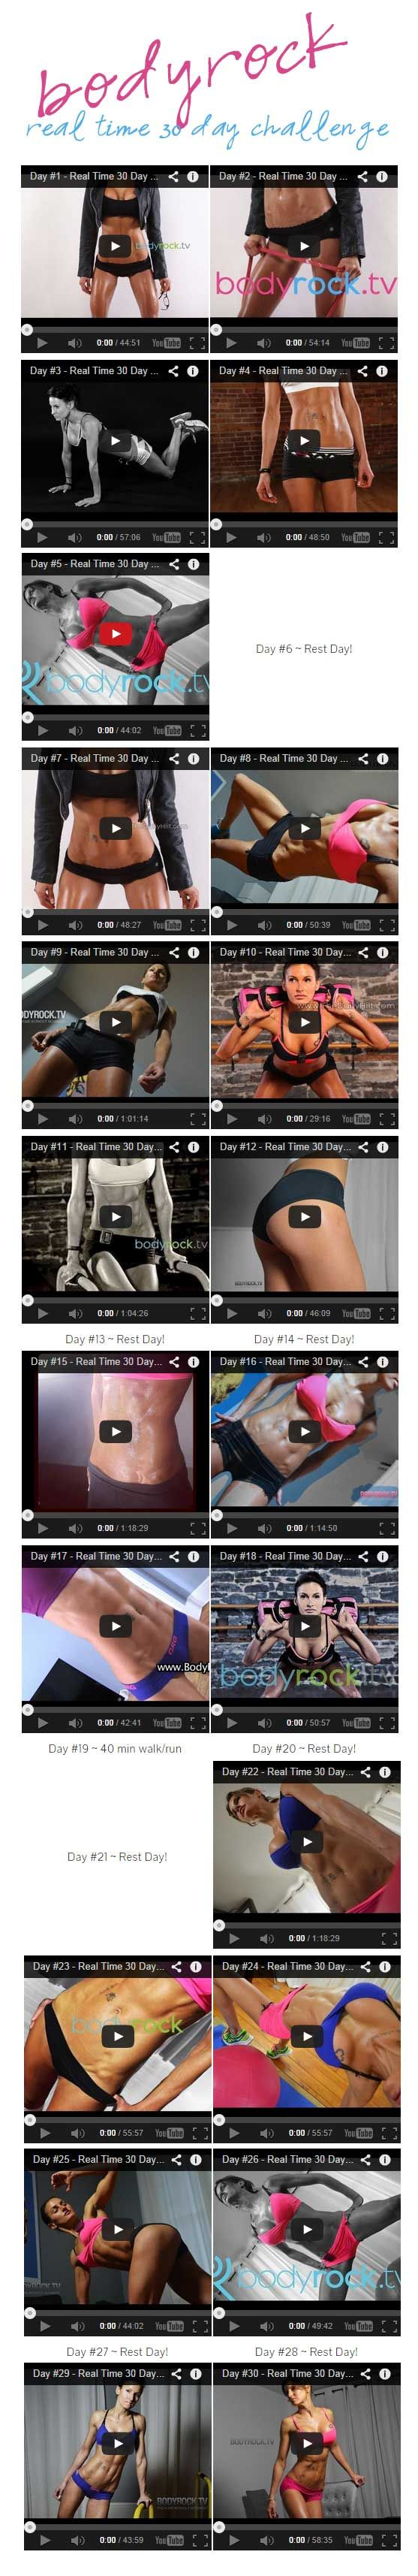 Real Time 30 Day BodyRock Challenge - The 21 Day Challenge